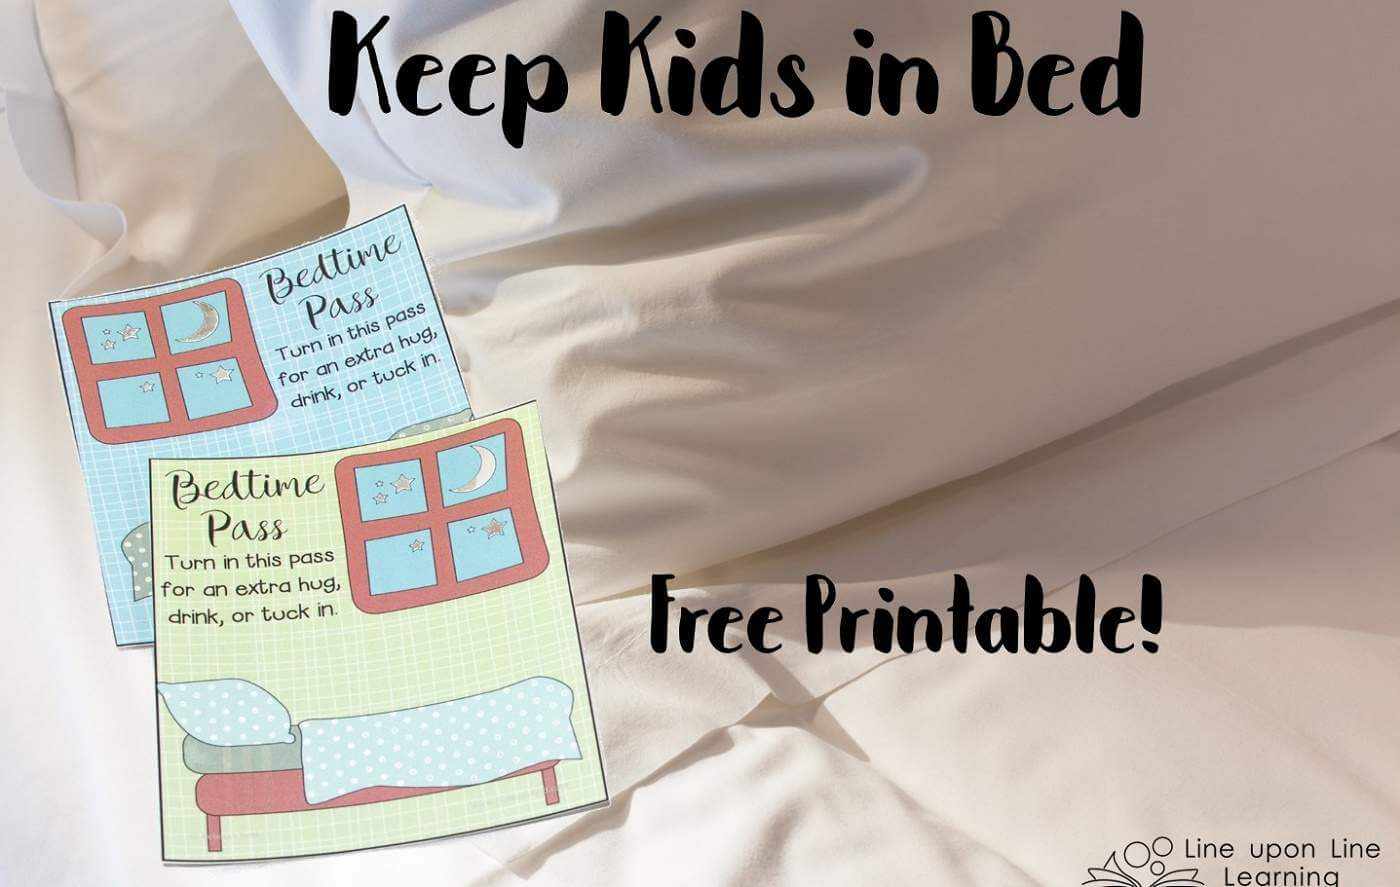 """I give two enticing """"tickets"""" each week, which allow her to come out of bed after bedtime. Now she is more in control of the bedtime routine, and she's learning that she is supposed to stay in bed."""